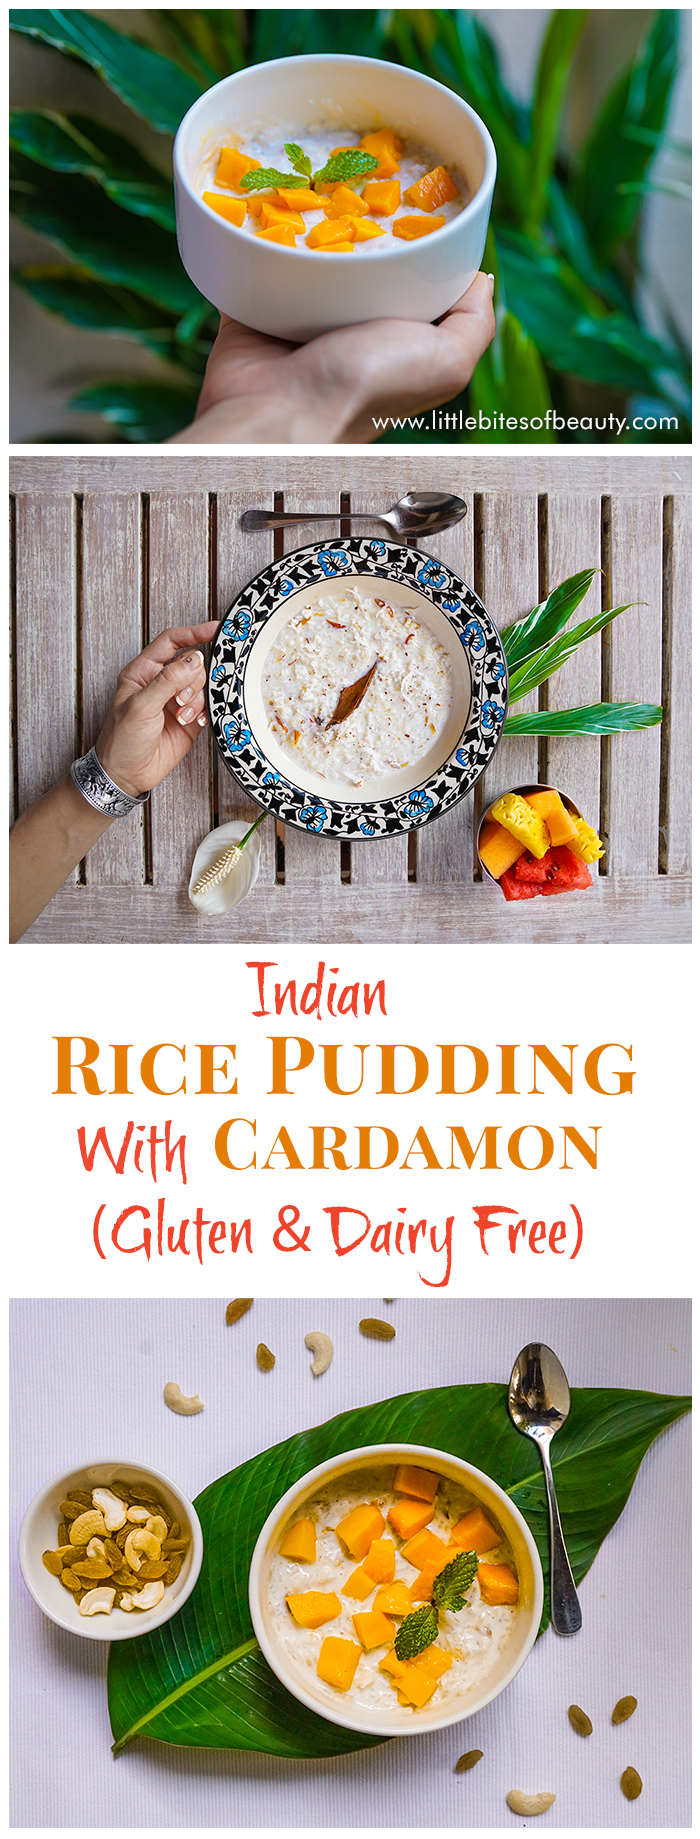 Kheer - Indian Rice Pudding With Cardamom (Gluten Free & Dairy Free)